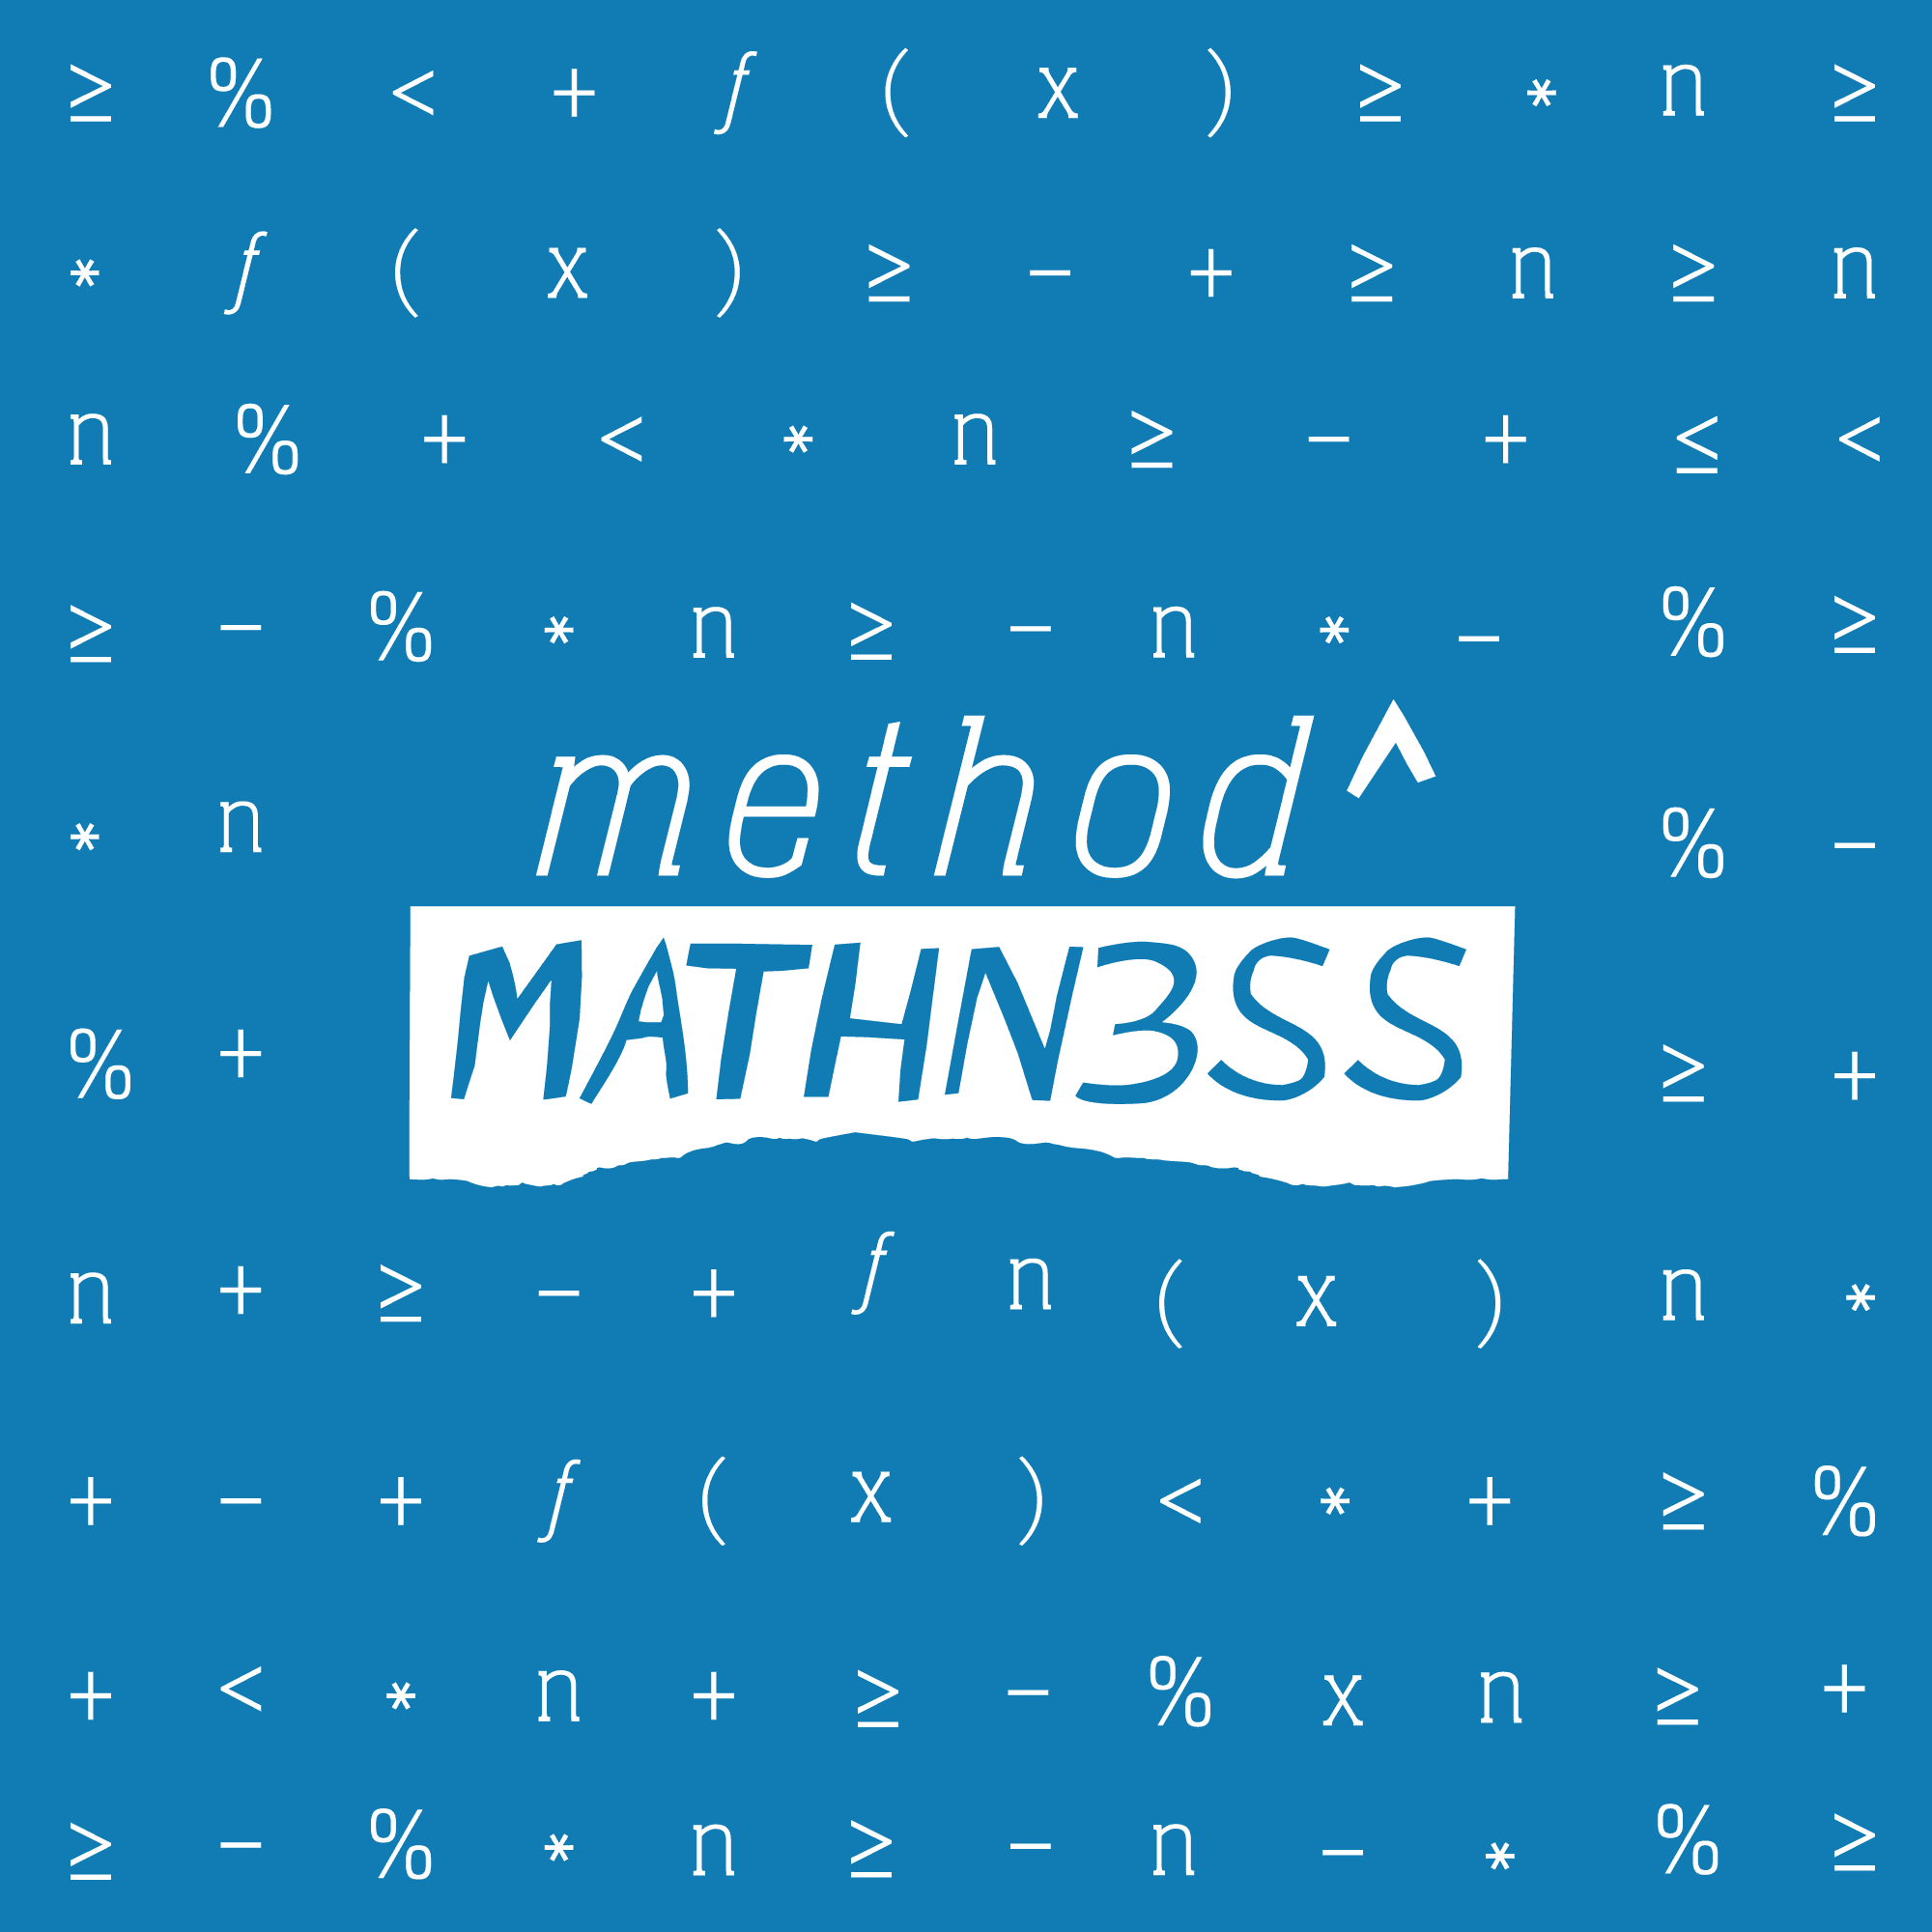 method to the mathness cover art